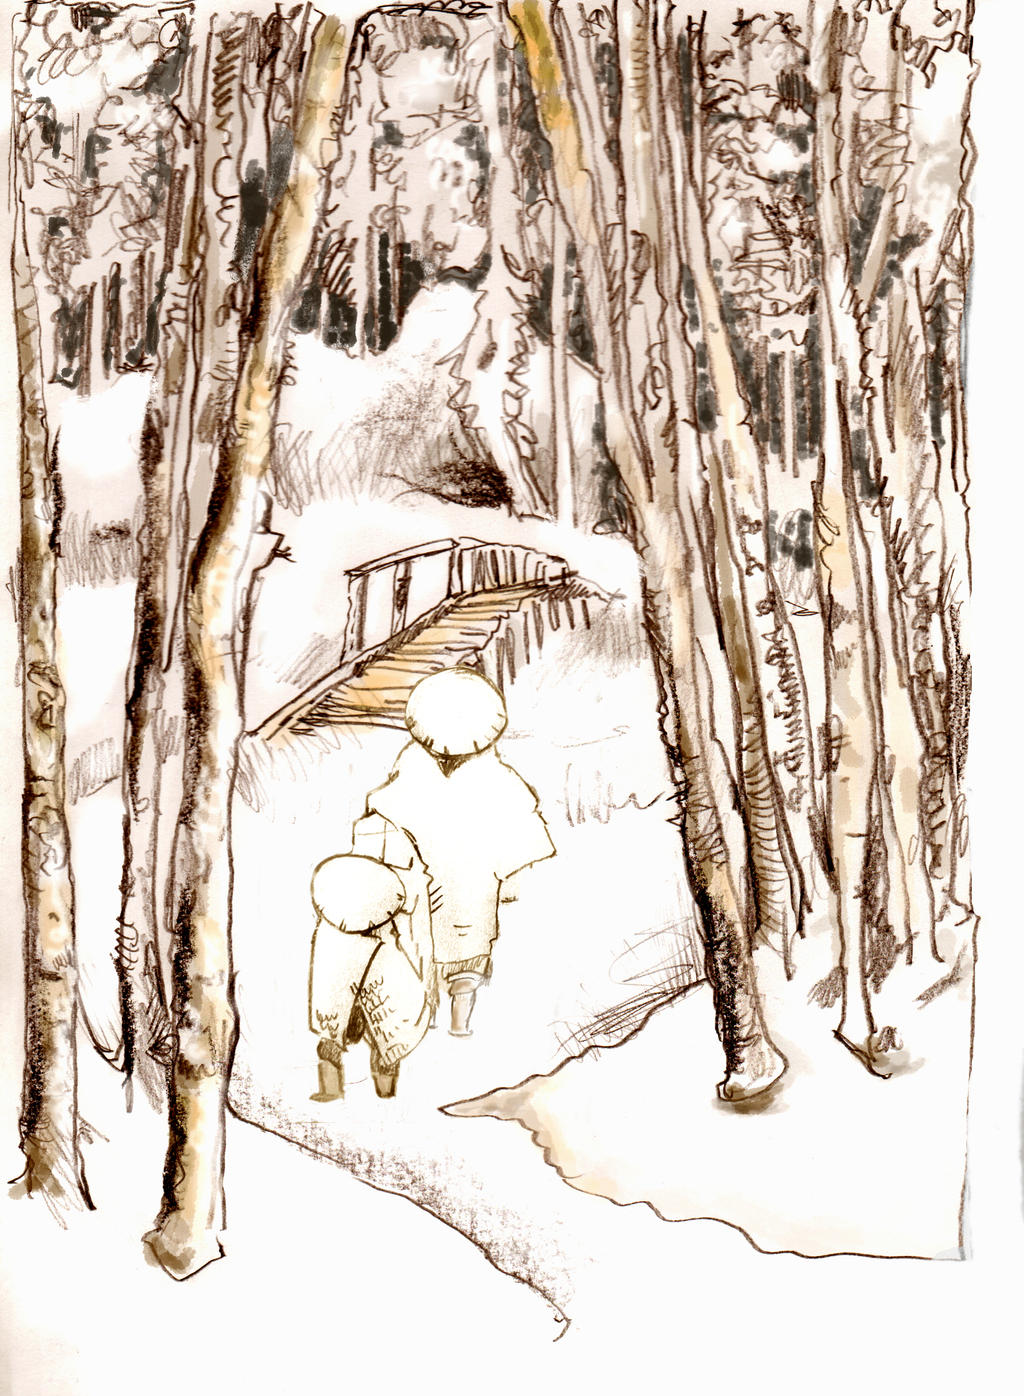 Figures in Snow  with Birch Trees